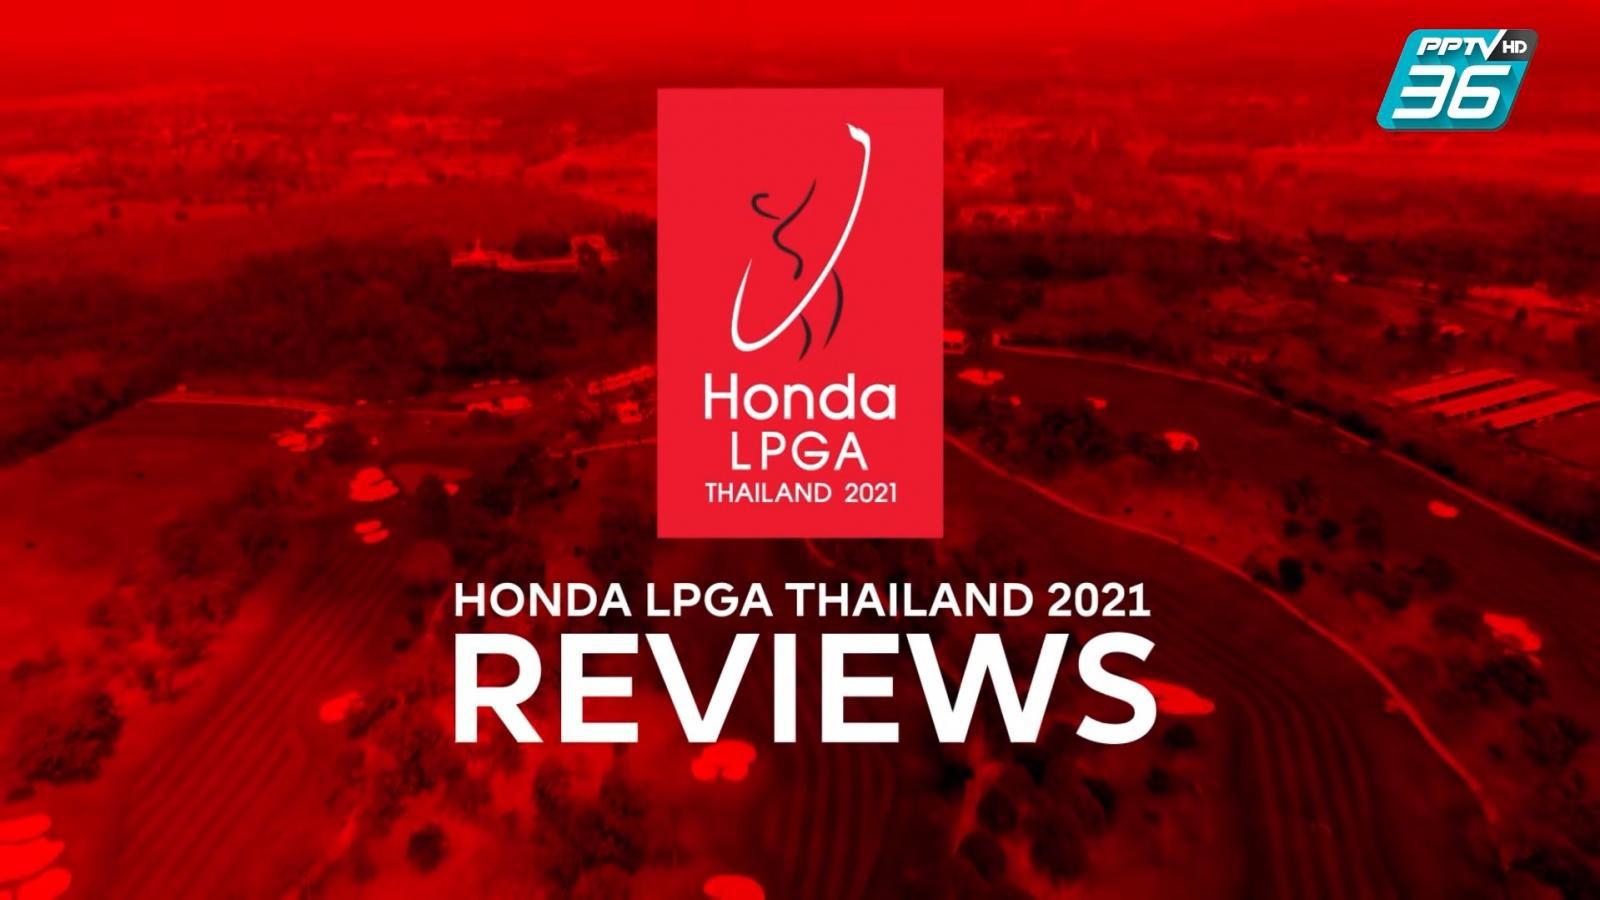 Honda LPGA Thailand 2021 Reviews : ตอนที่ 3